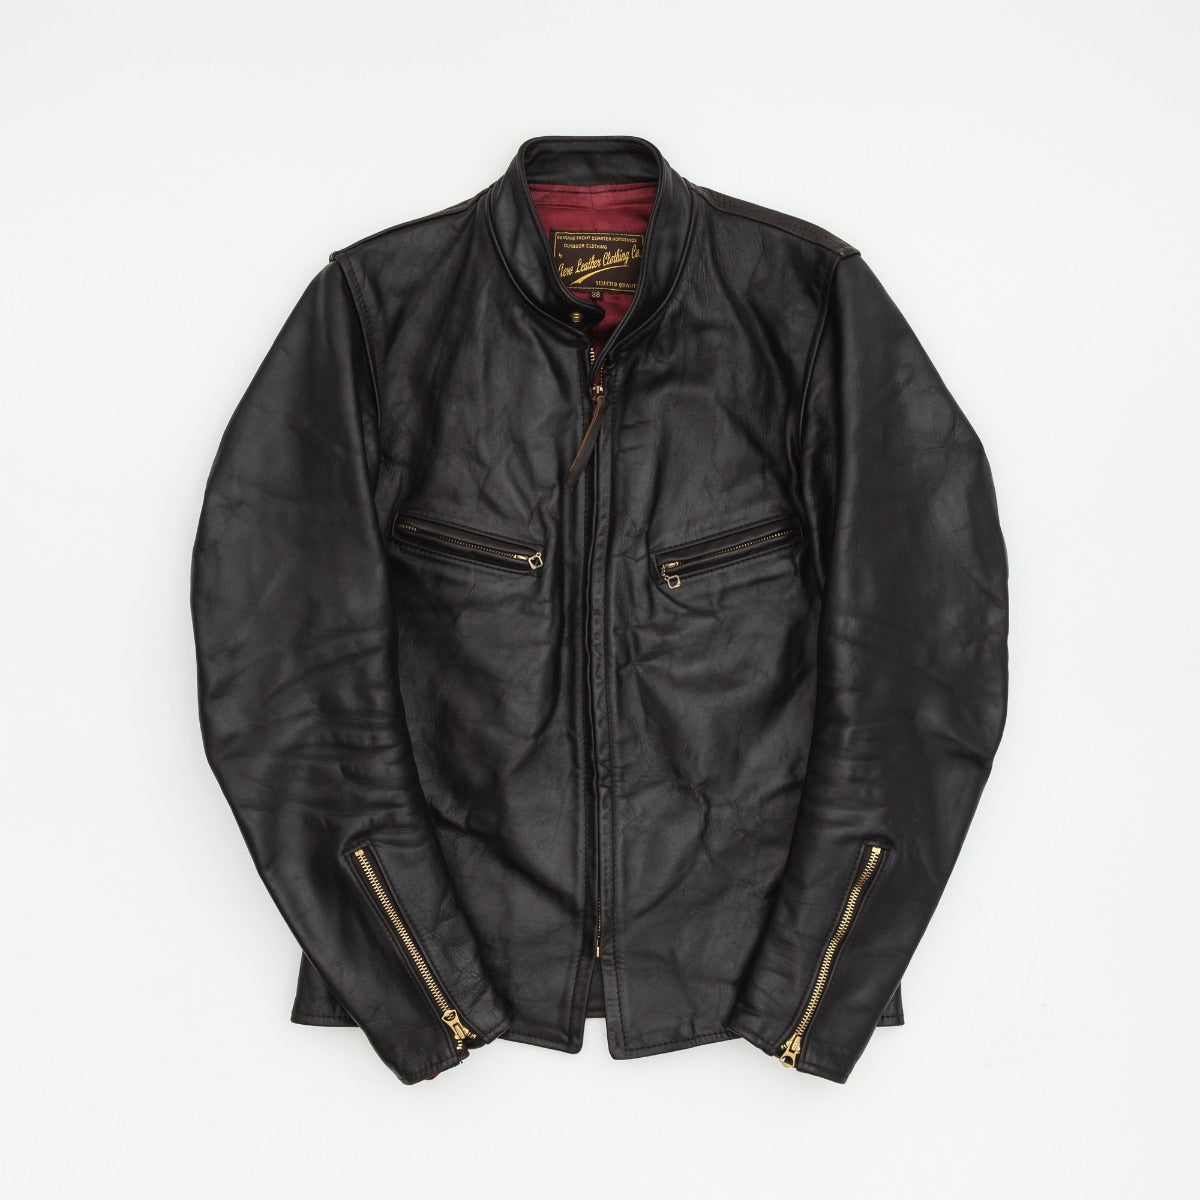 Aero Leather Co Leather Jacket